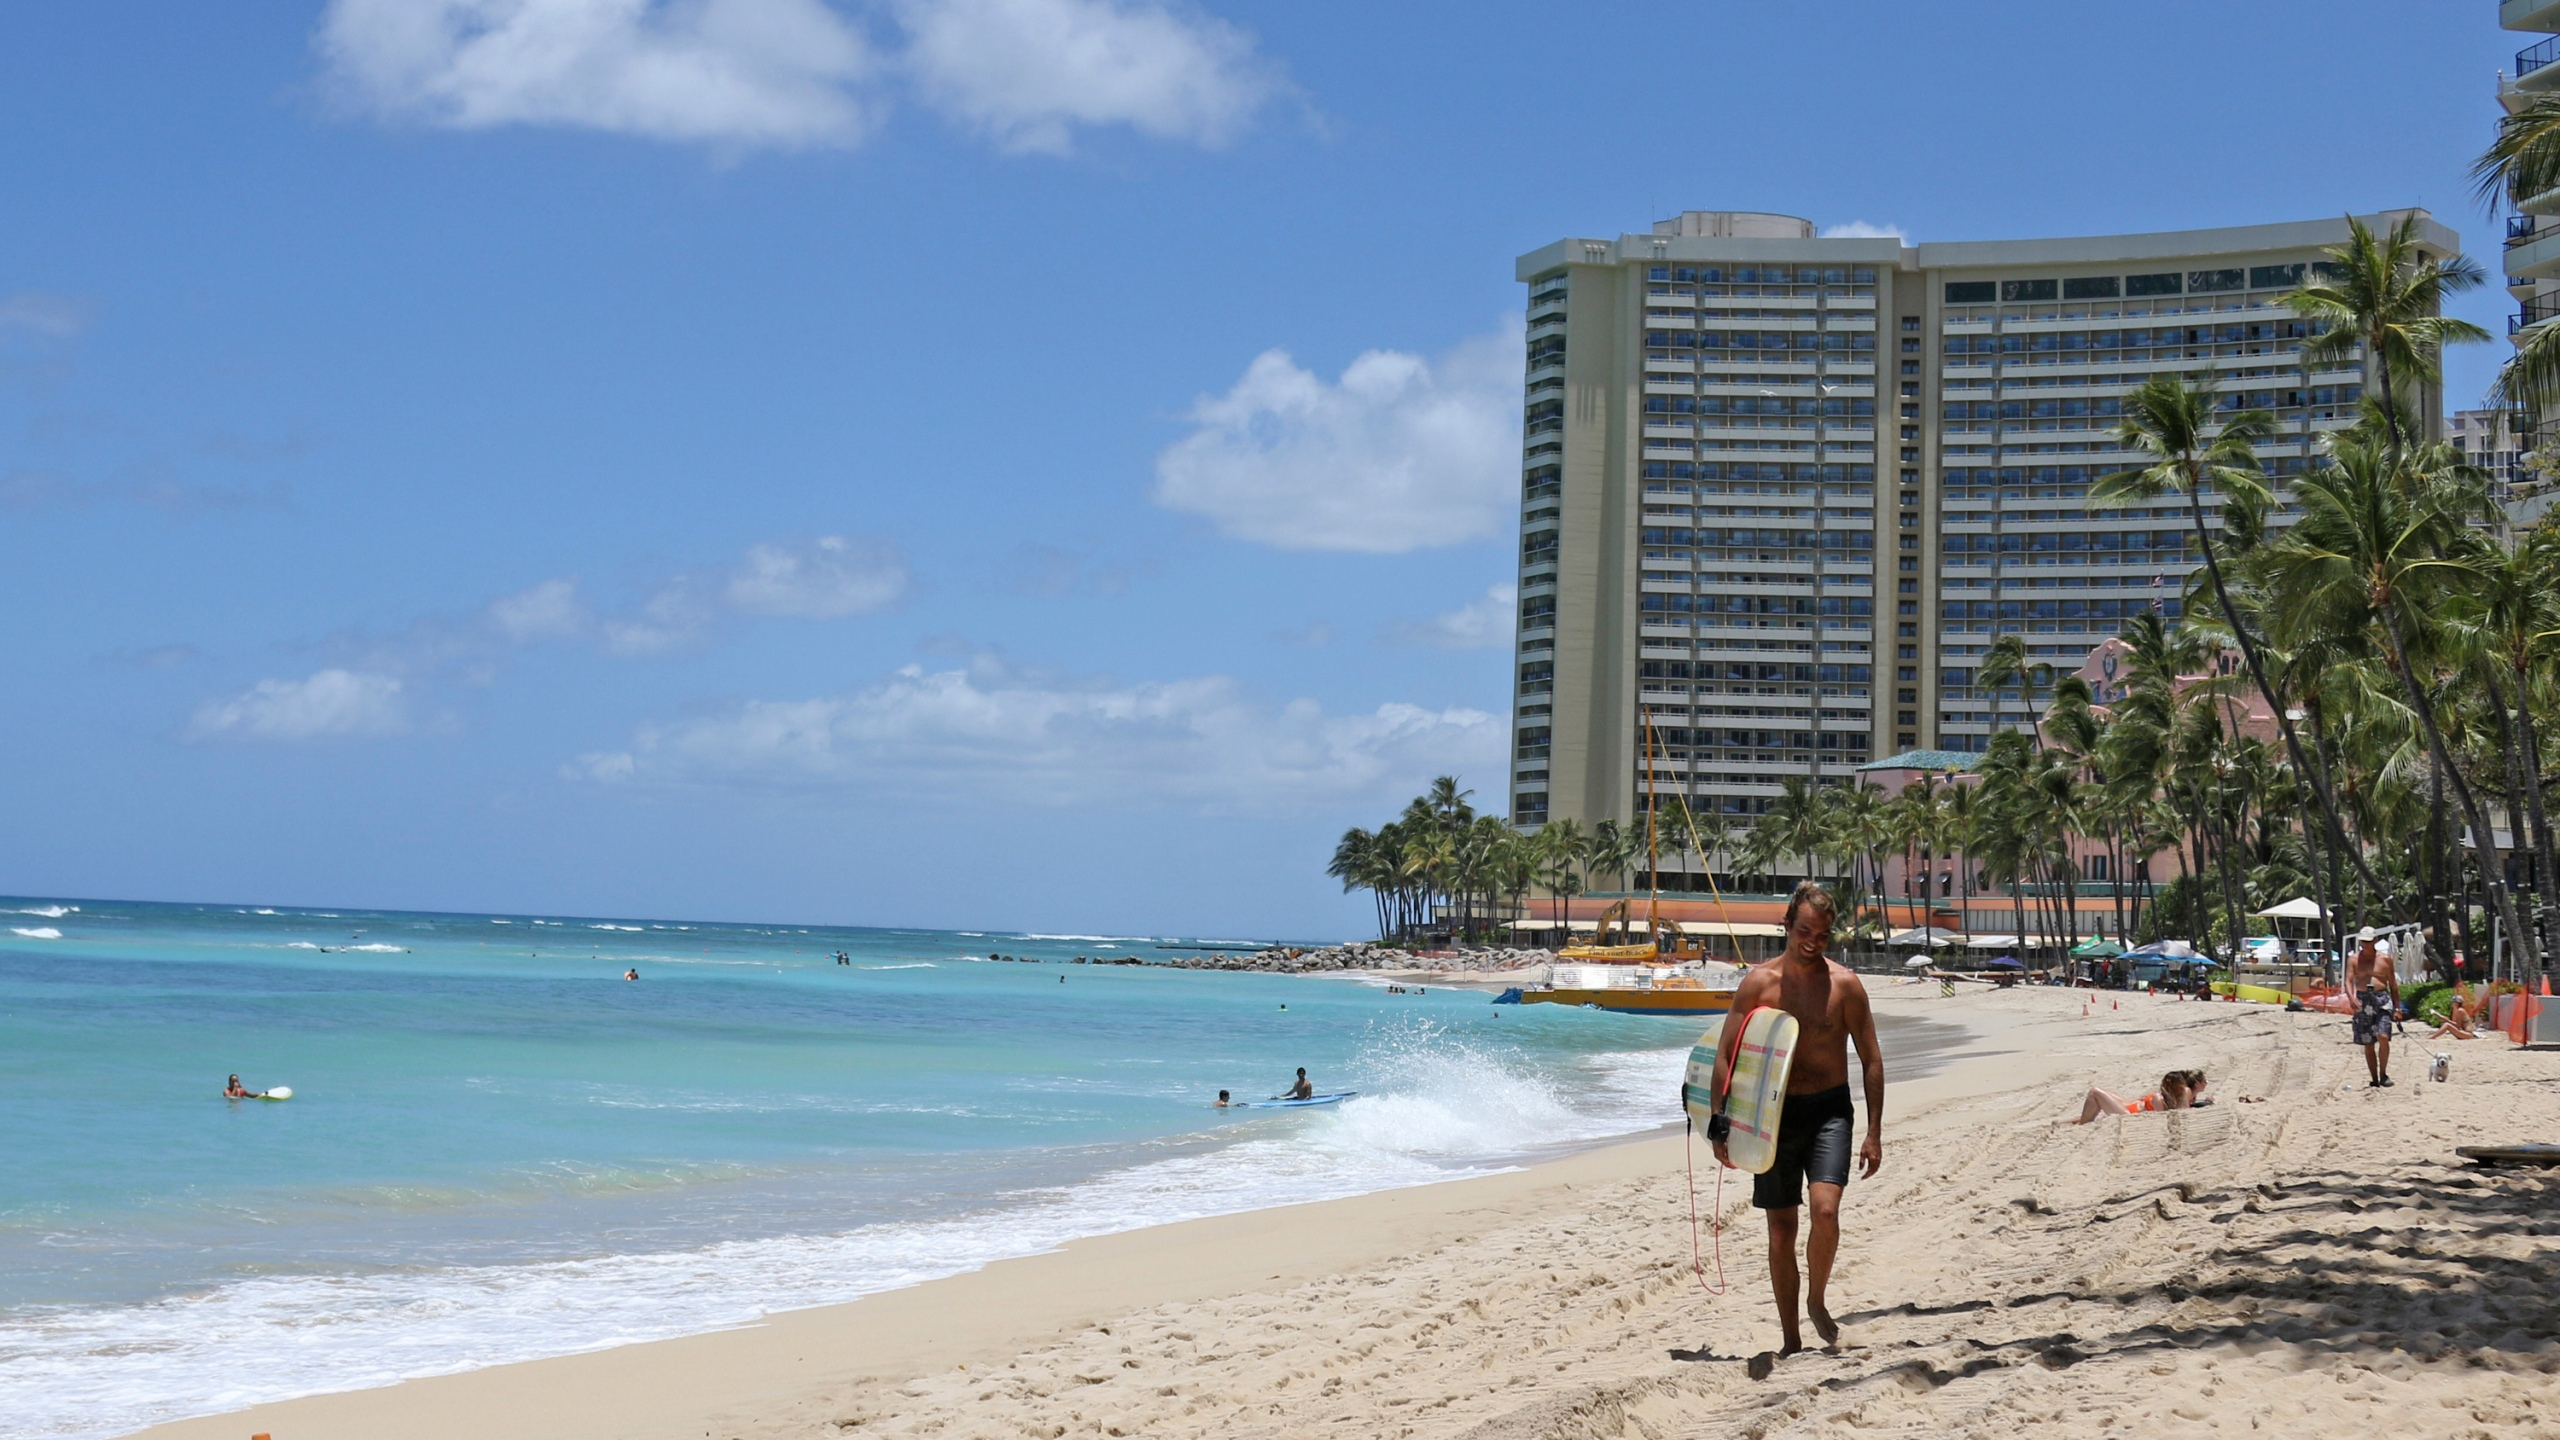 In this June 5, 2020, file photo, a surfer walks on a sparsely populated Waikiki Beach in Honolulu. Hawaii's governor says that starting Oct. 15, travelers arriving from out of state may bypass a 14-day quarantine requirement if they test negative for COVID-19. (AP Photo/Audrey McAvoy)